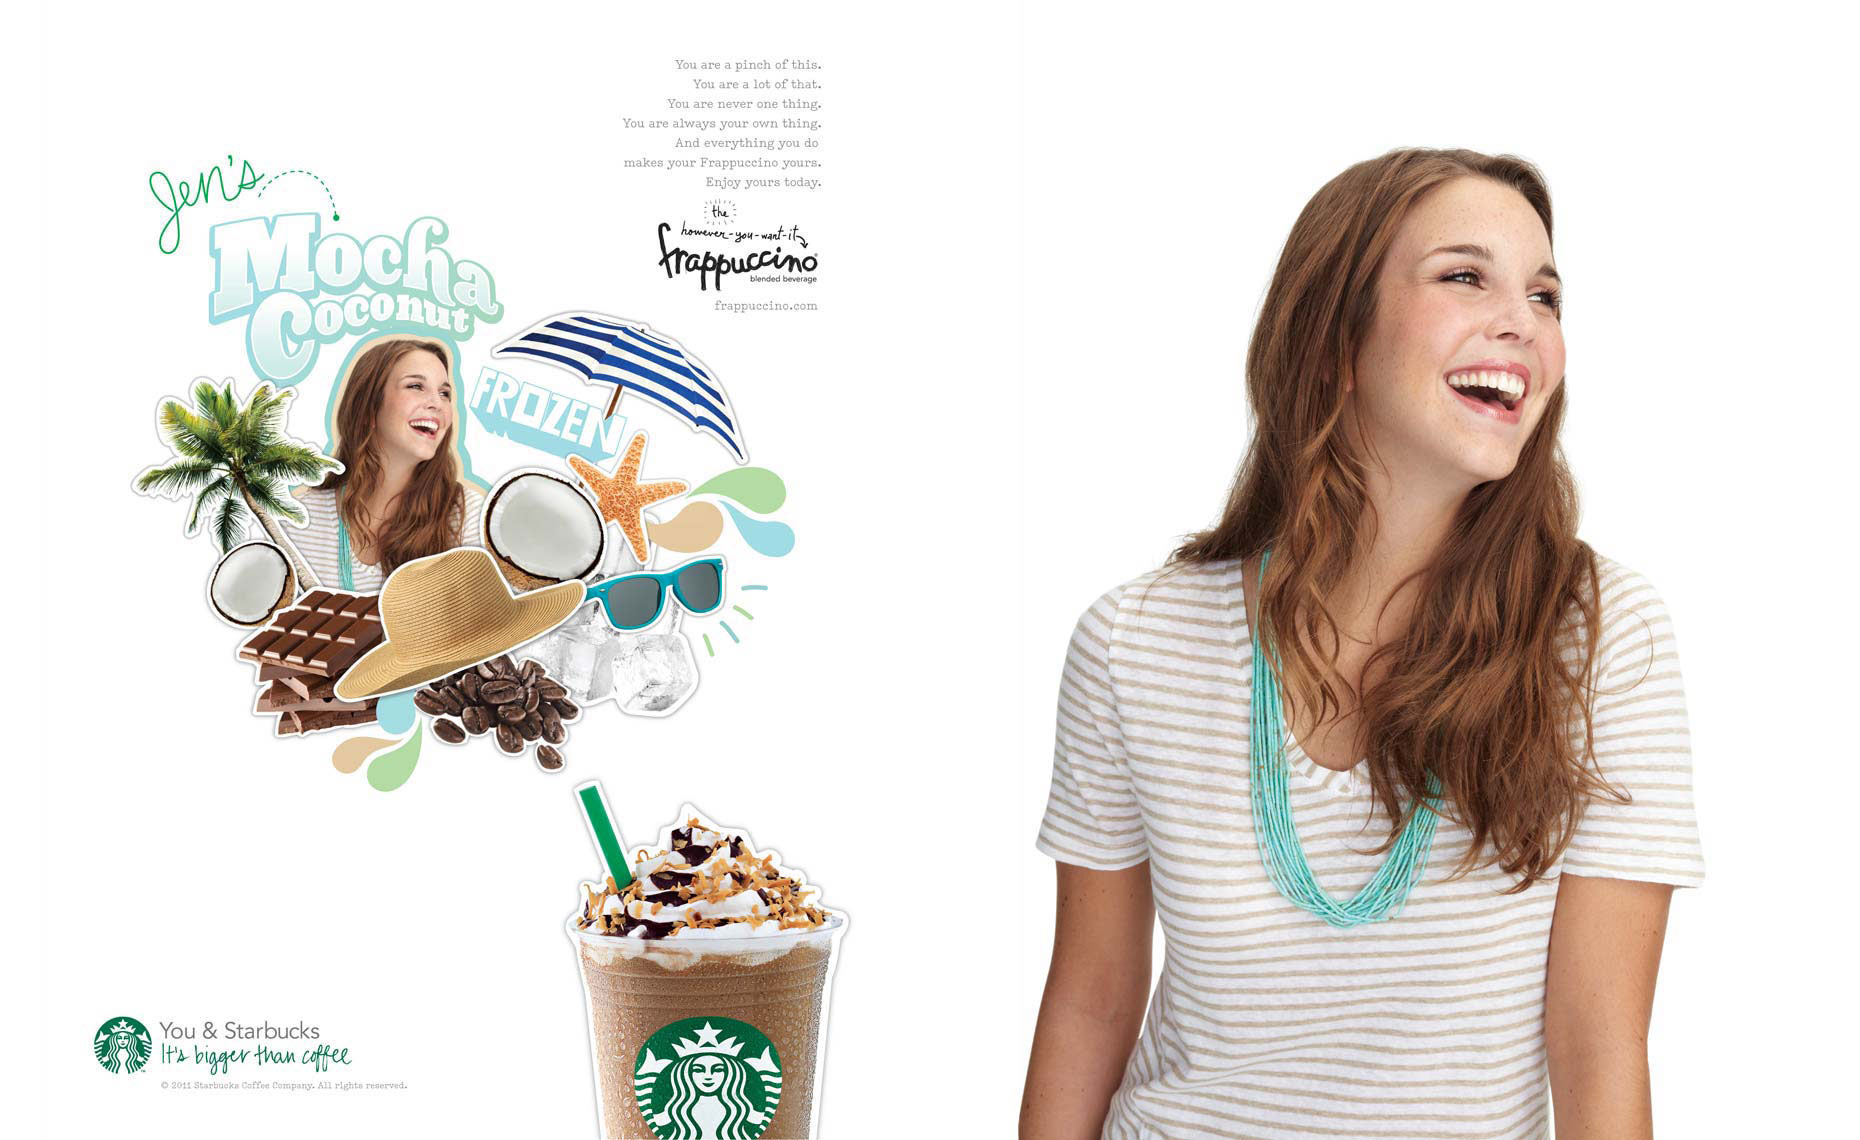 ADVERTISING_019Mocha_Coconut_WEB